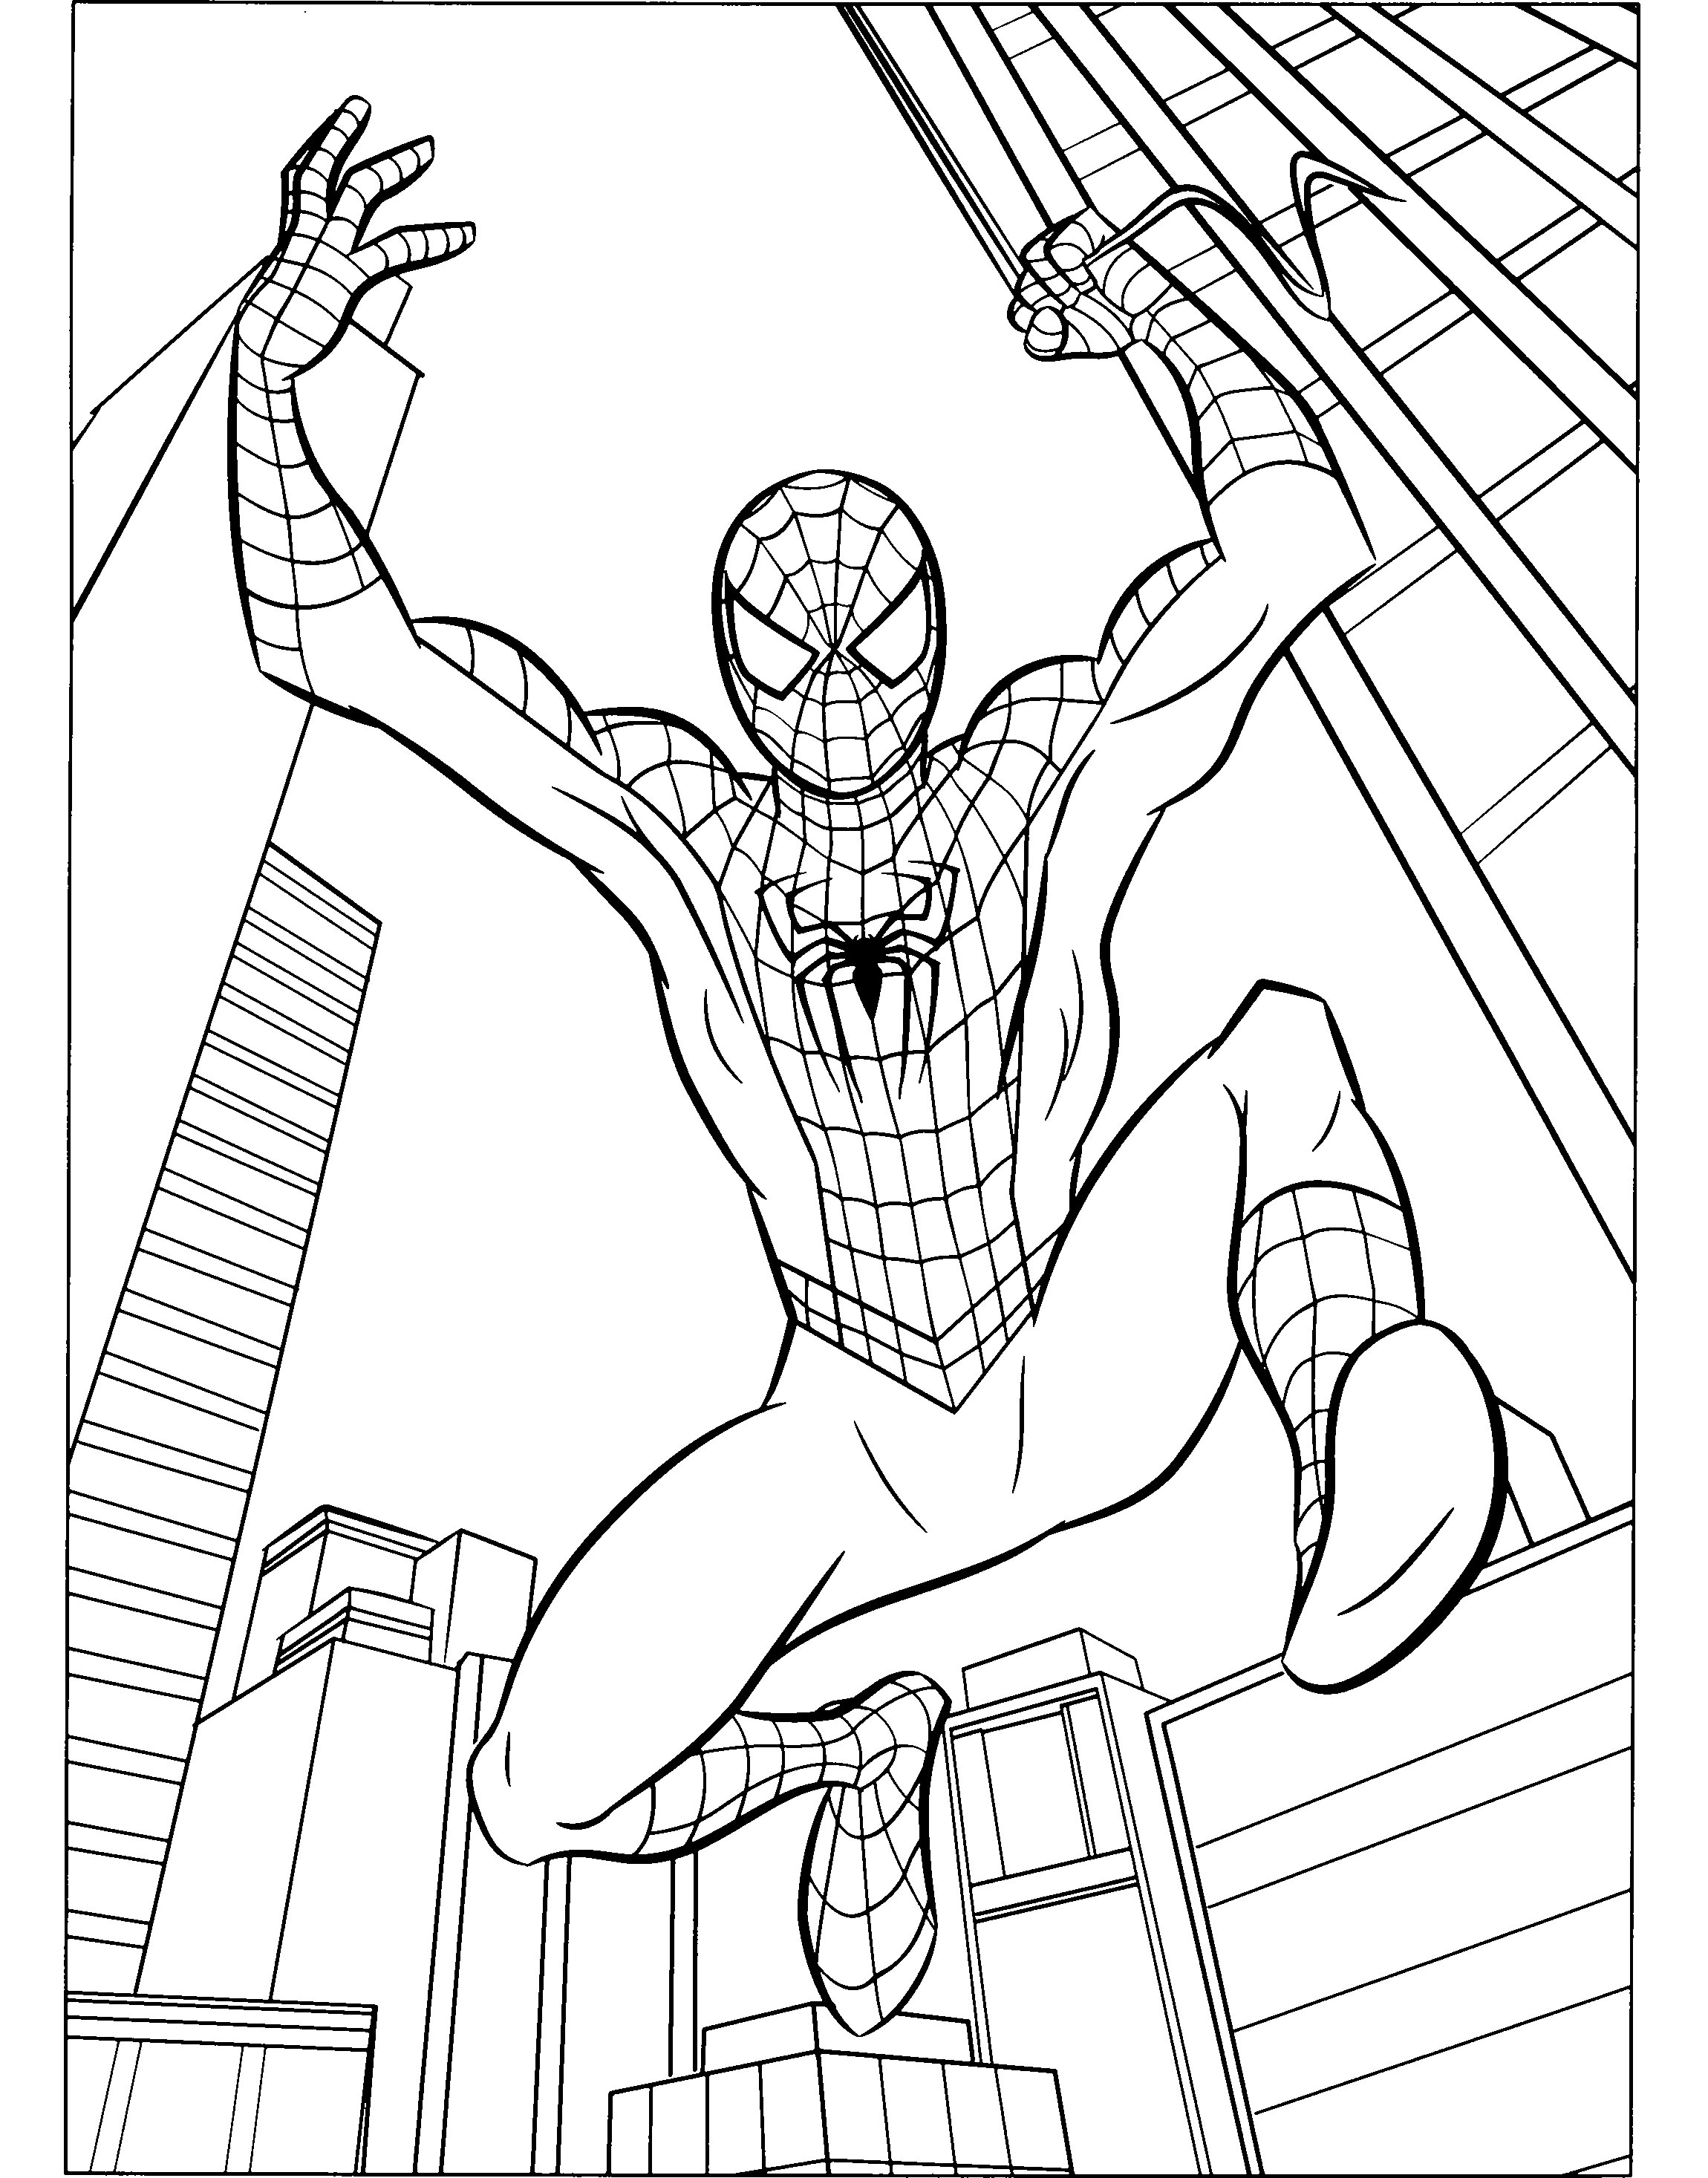 spiderman colouring pics coloring pages spiderman free printable coloring pages pics spiderman colouring